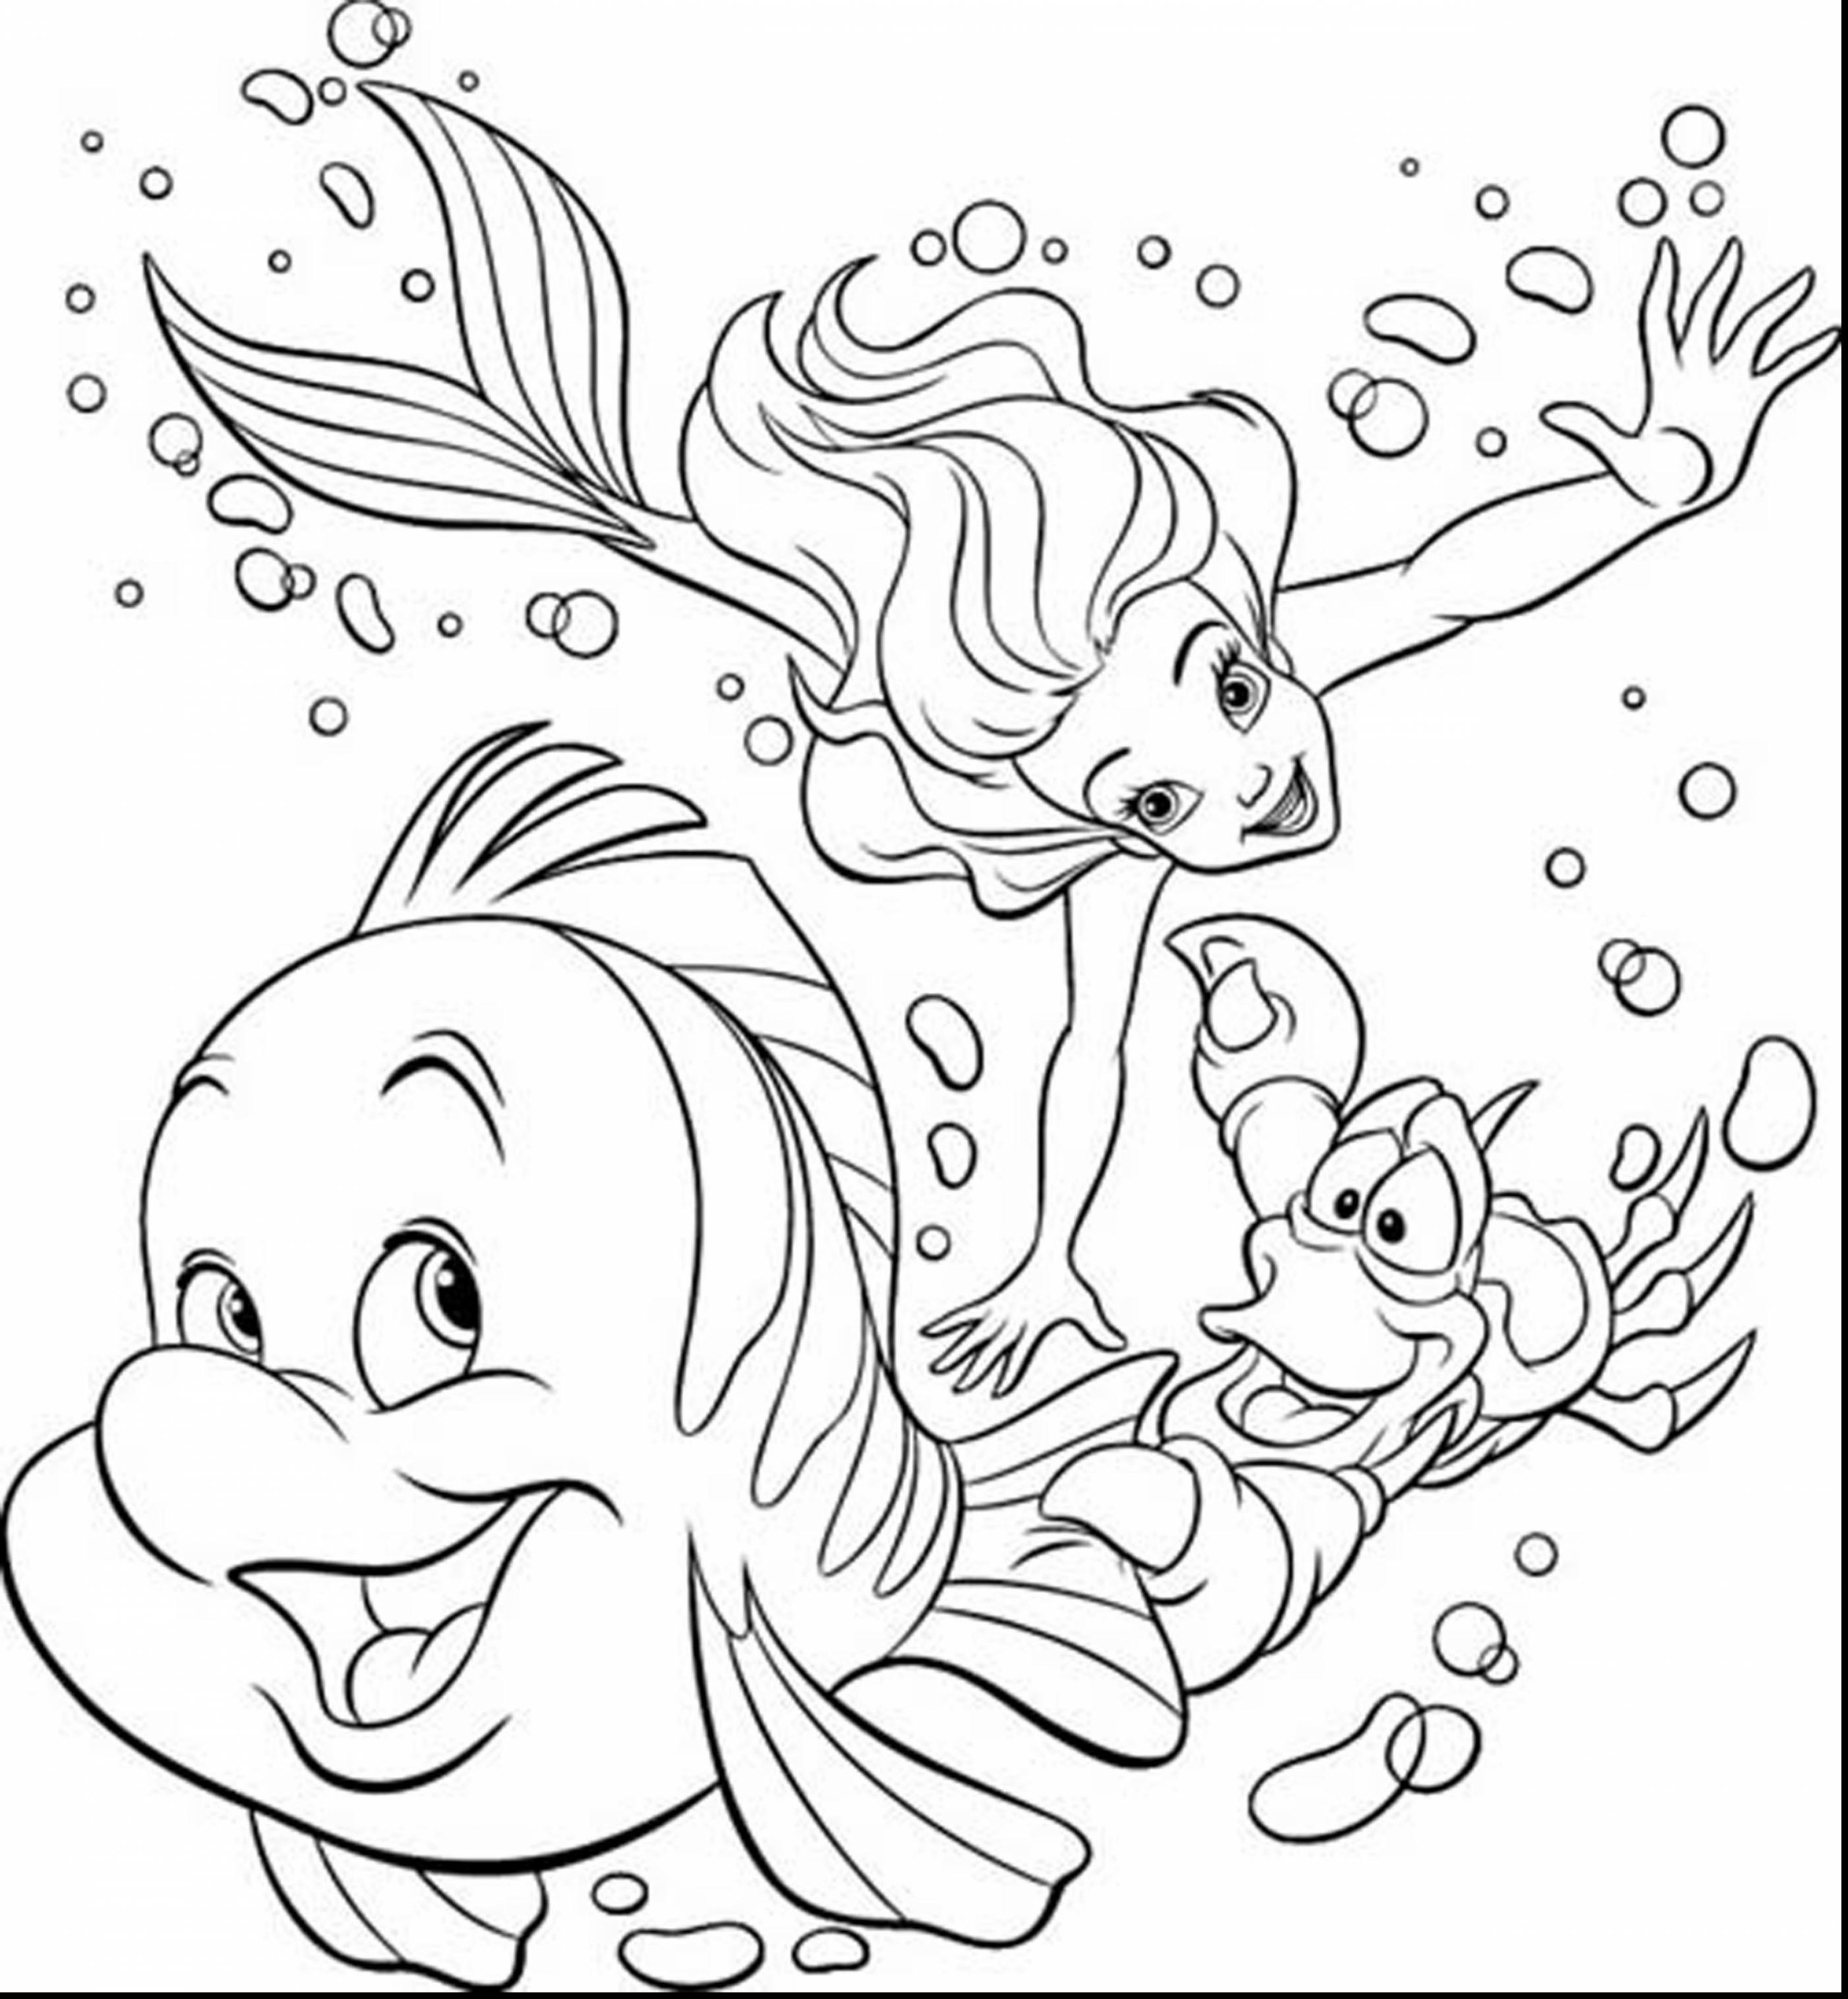 Coloring Pages : Freerint Coloringages Disney Arielfree To Castle - Free Printable Disney Coloring Pages